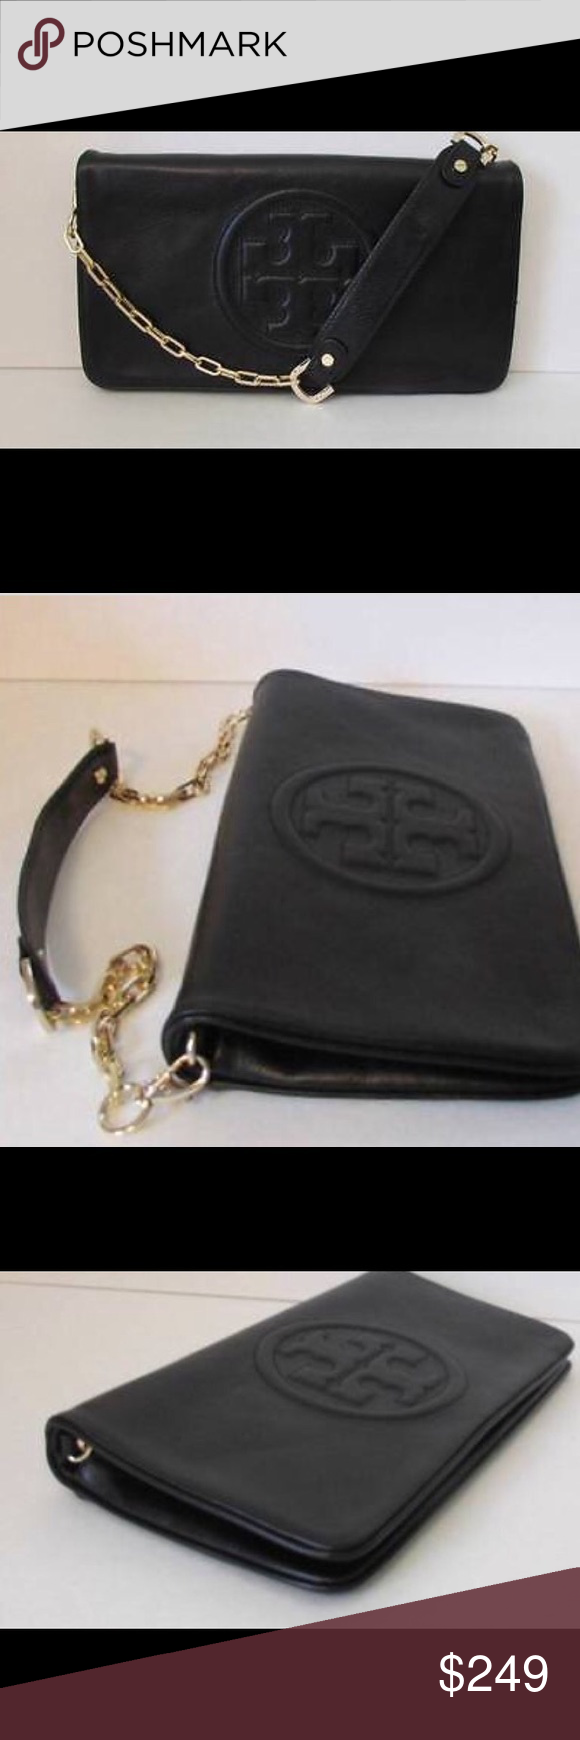 Nwt Tory Burch Bombe Reva Clutch Nwt Tory Burch Bombe Reva Clutch/Shoulder. Black with Gold Chainlink Strap. Ships Next Day! Tory Burch Bags Clutches & Wristlets